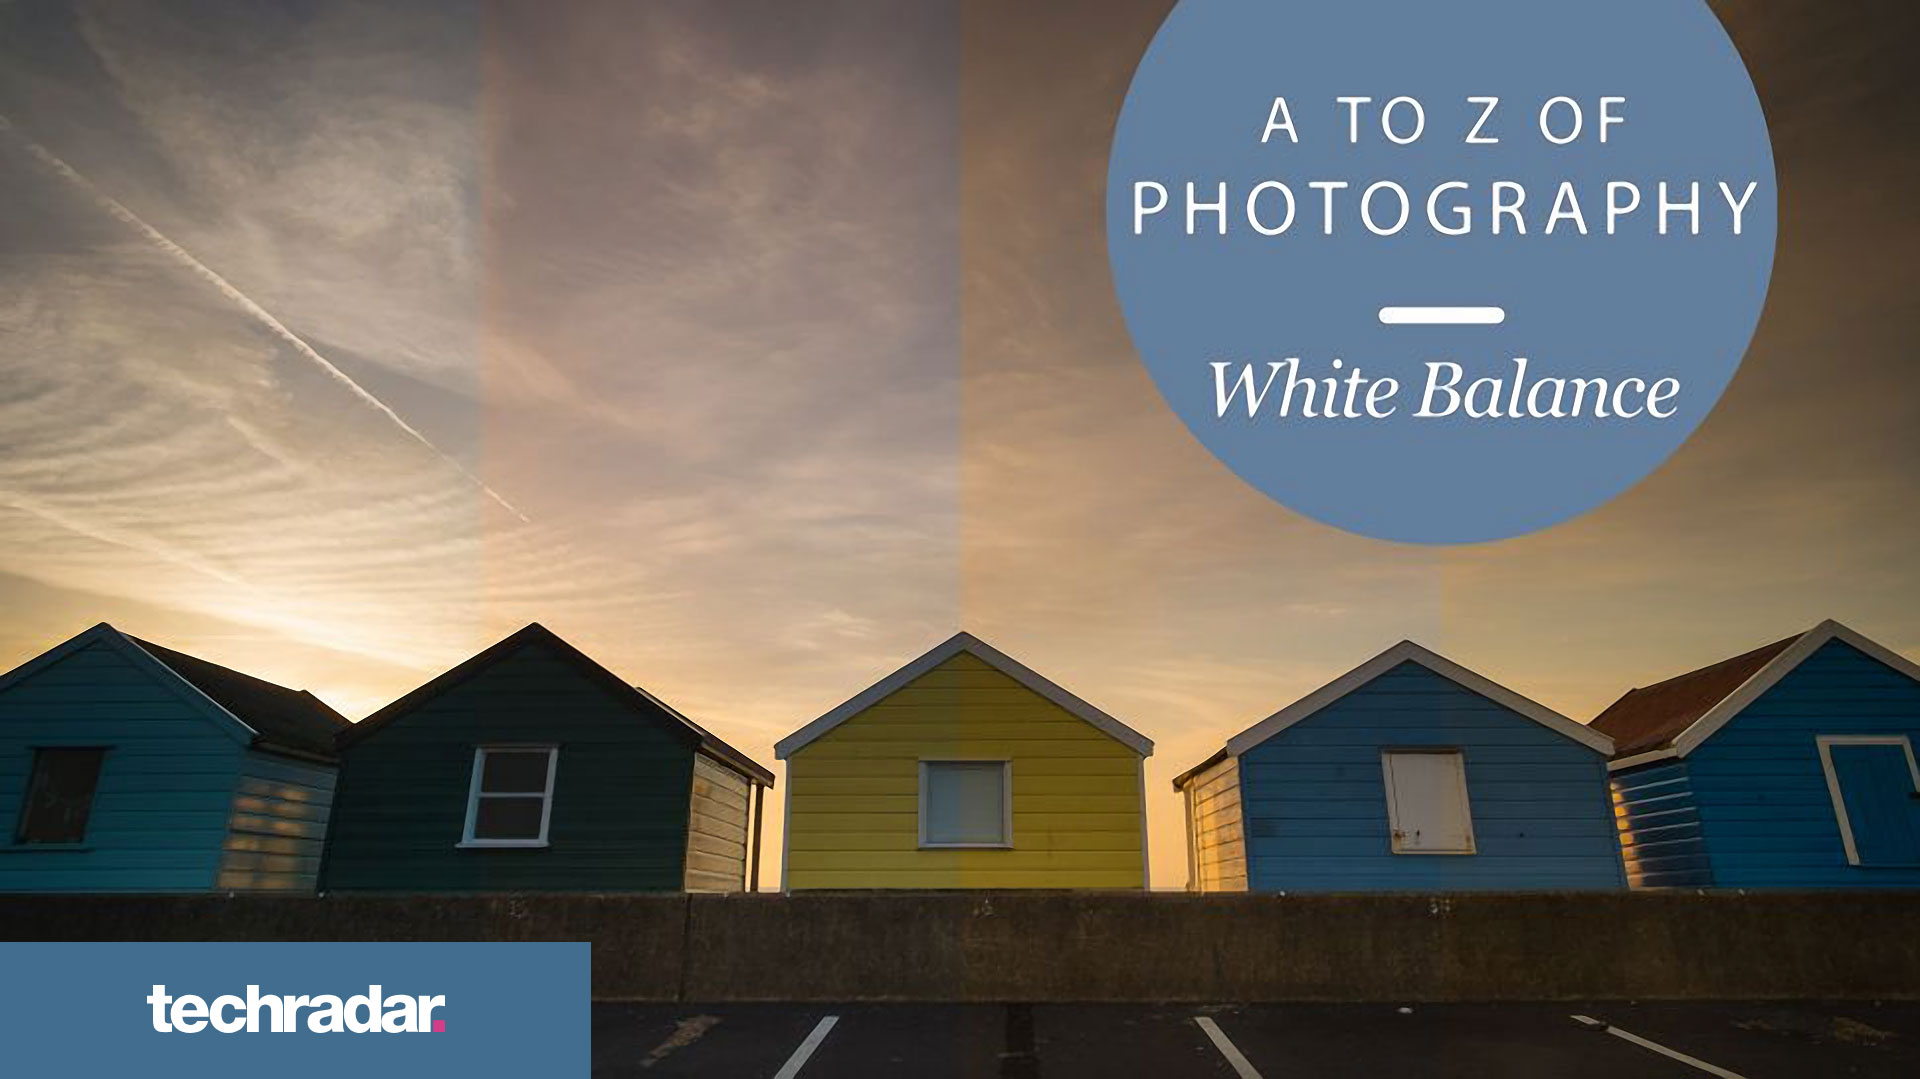 The A to Z of Photography: White Balance